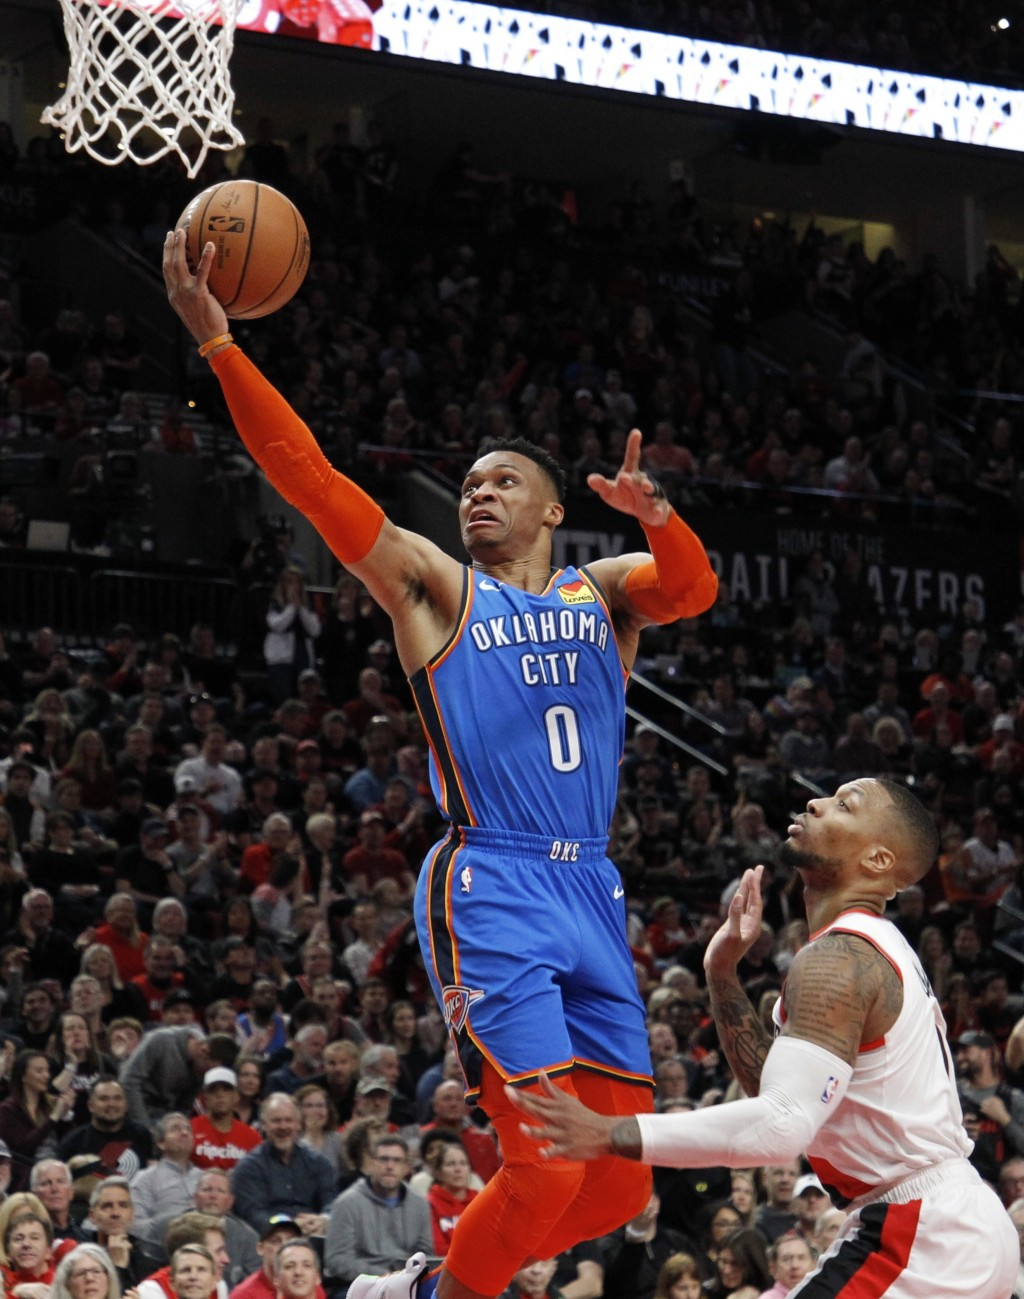 Oklahoma City Thunder guard Russell Westbrook, left, shoots as Portland Trail Blazers guard Damian Lillard, right, defends during the first half of Ga